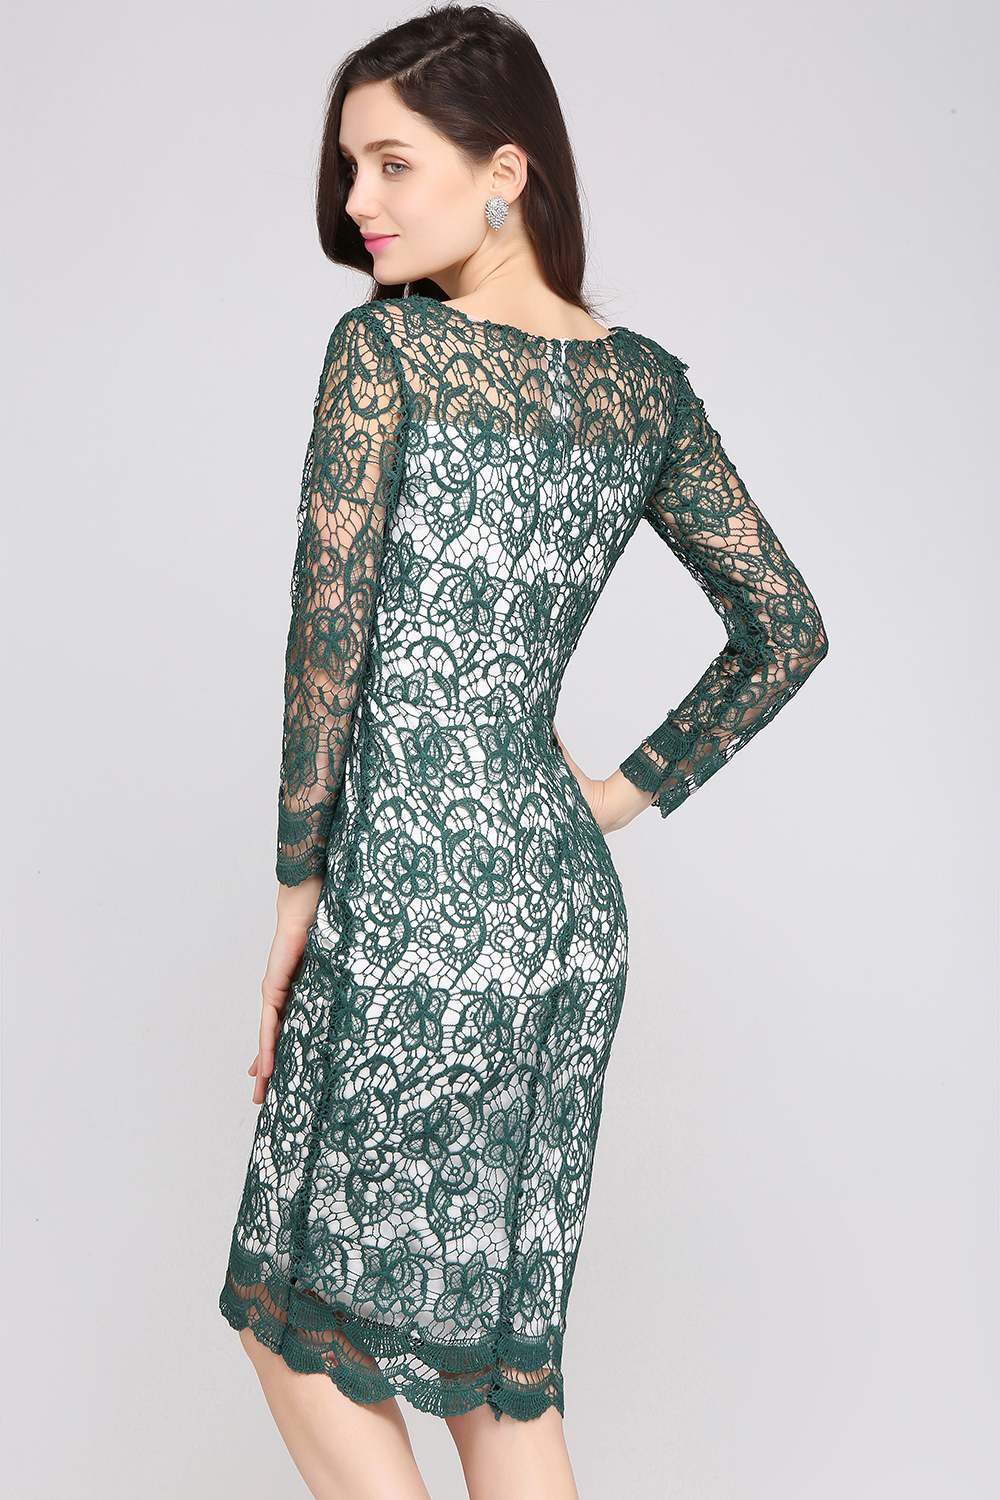 Babyonline Green Lace Cocktail Dresses 2017 Knee Length Long Sleeves ...